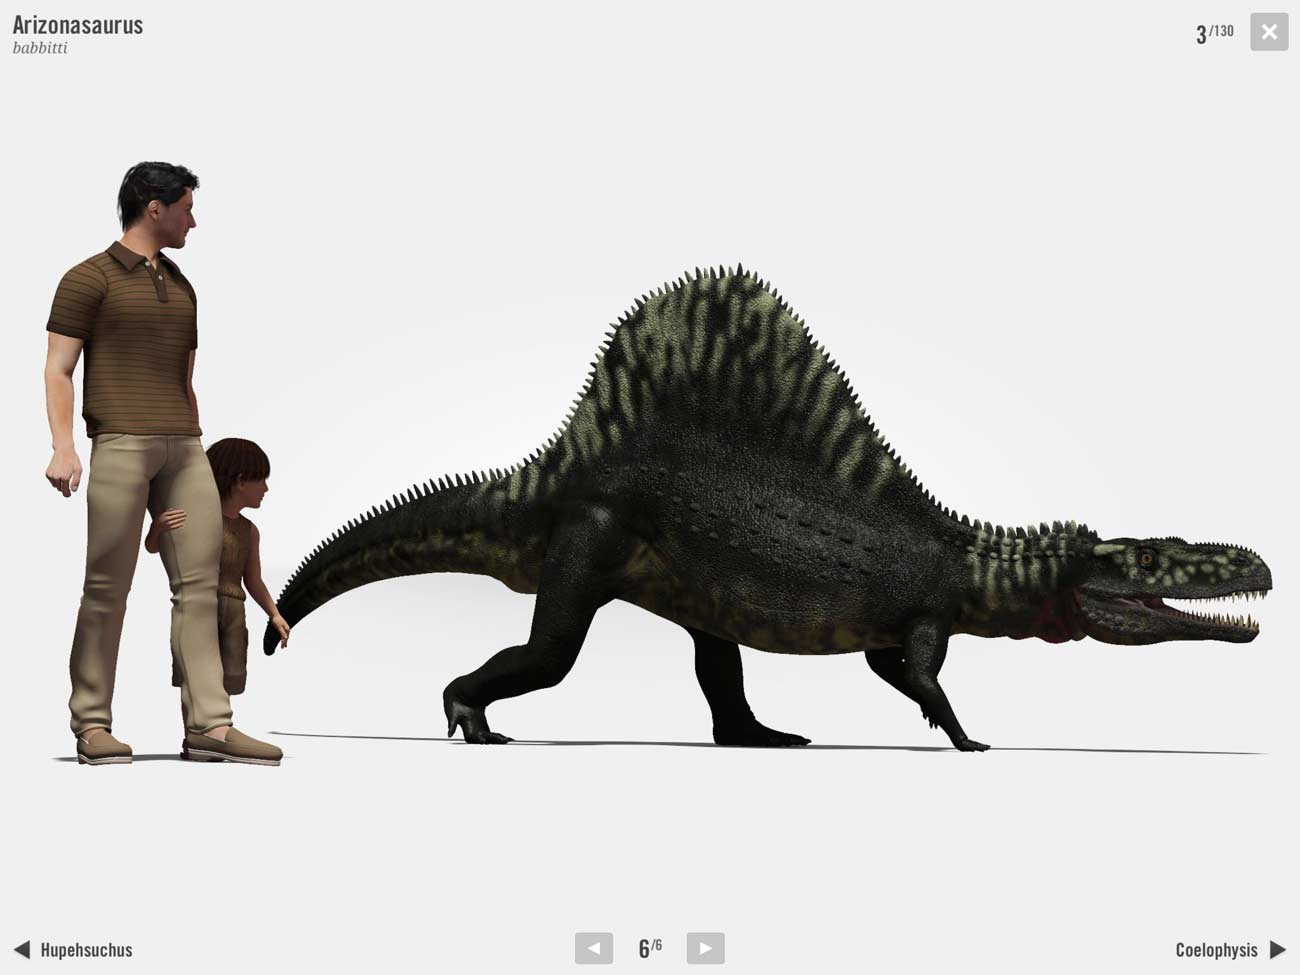 The size comparisons will help give your kid an understanding of each dinosaur's actual size.